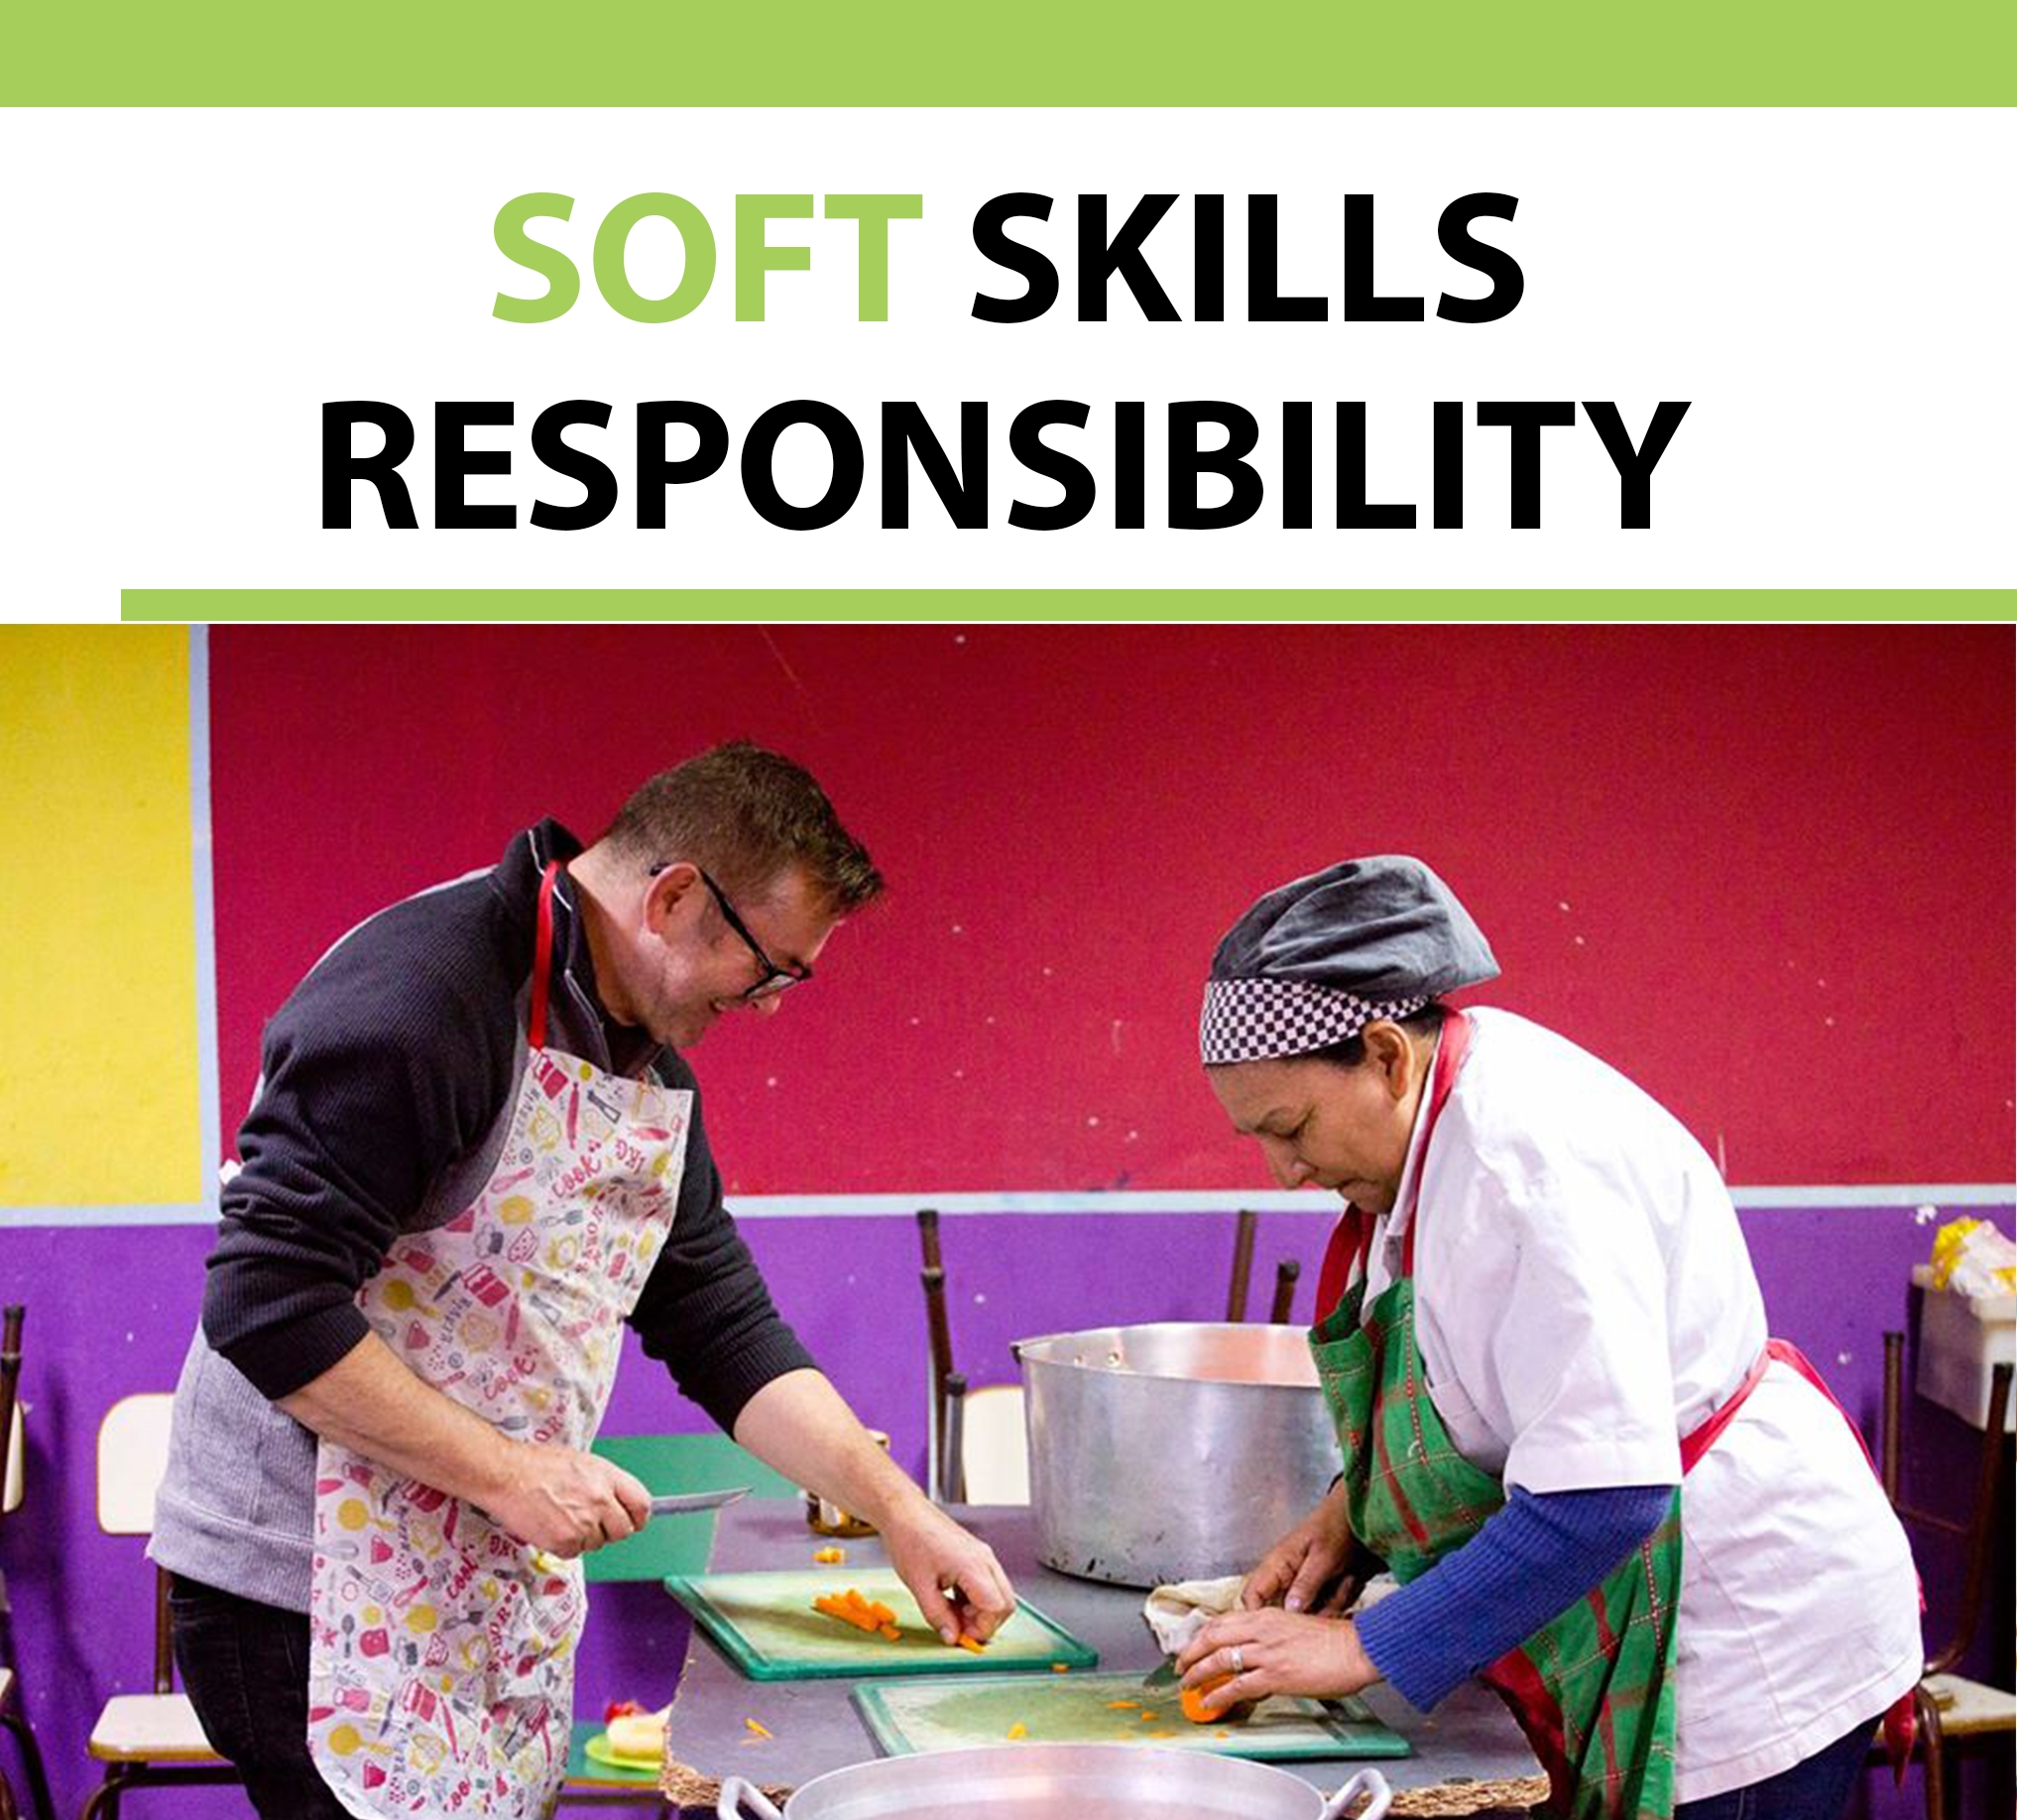 Let's talk about soft skills: Responsibility